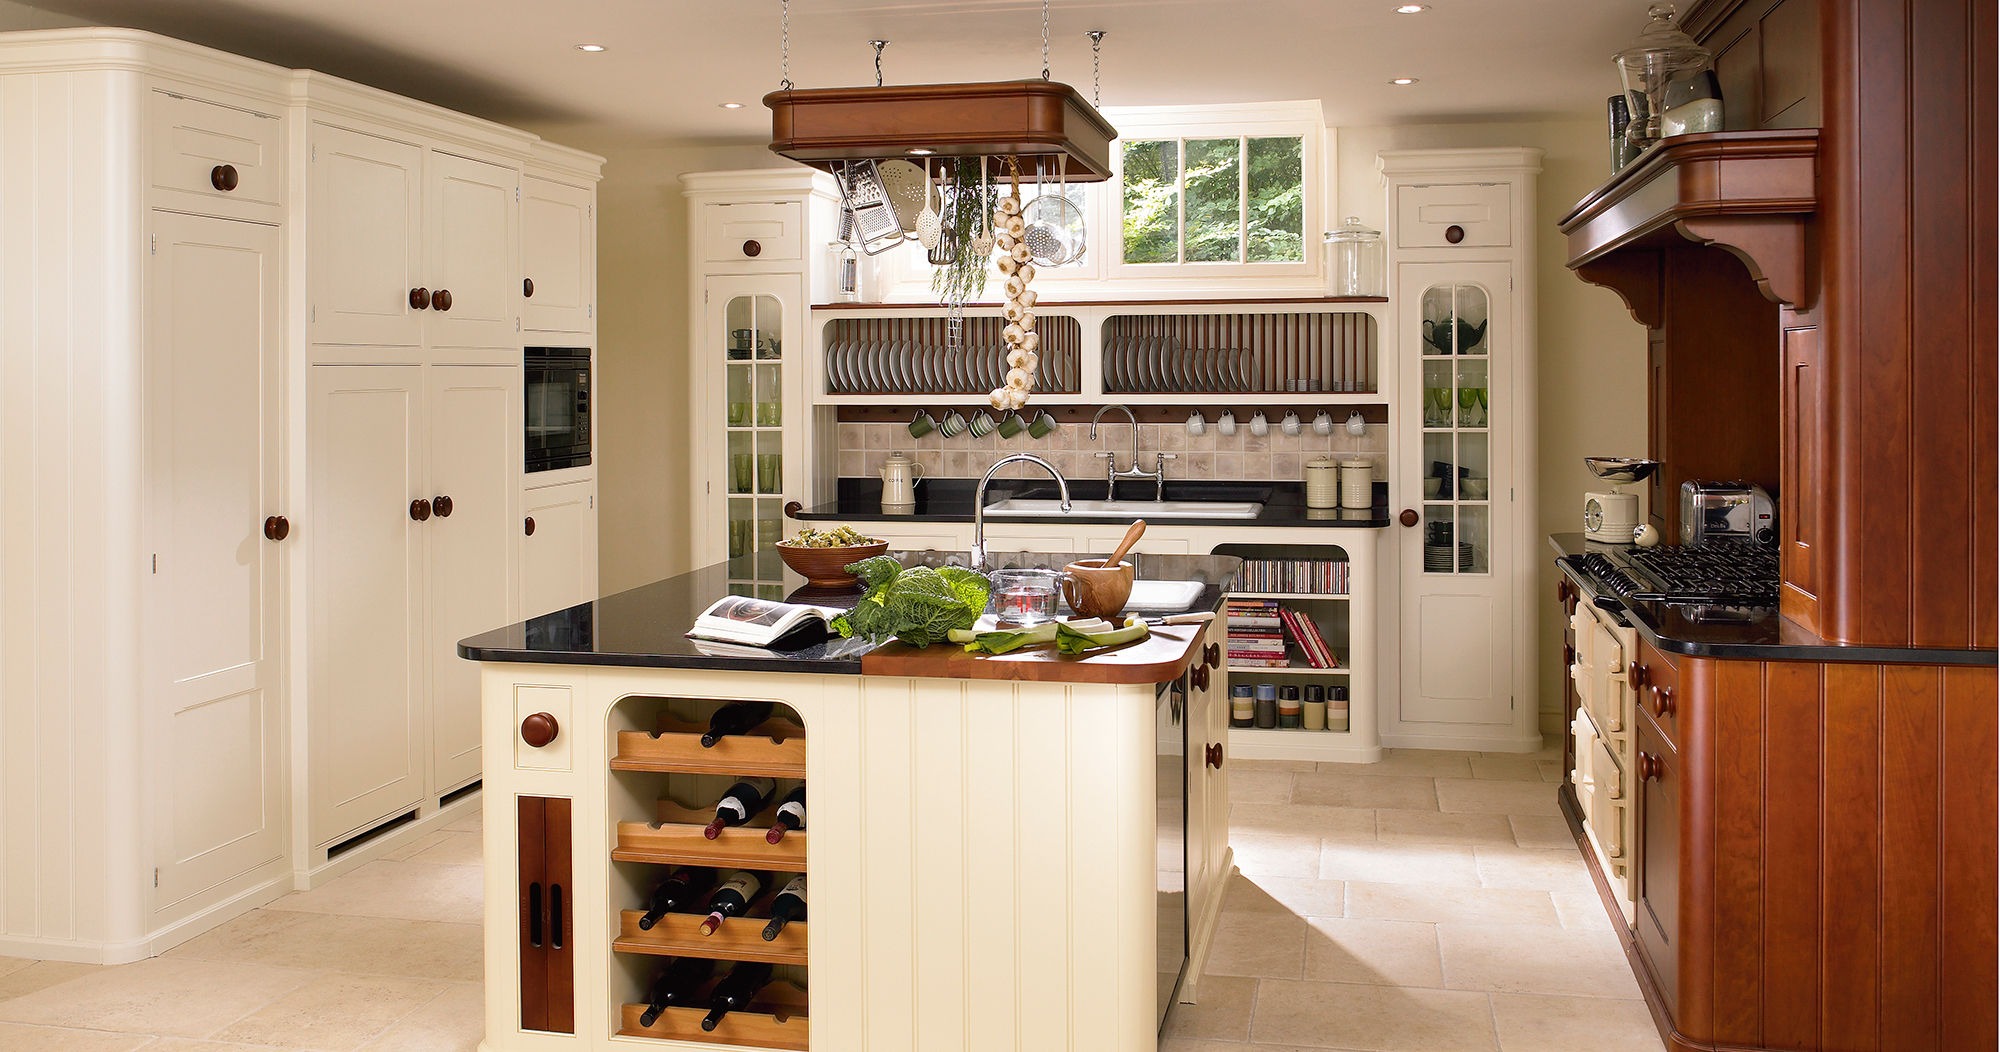 Mark wilkinson furniture collection cooks kitchen 14